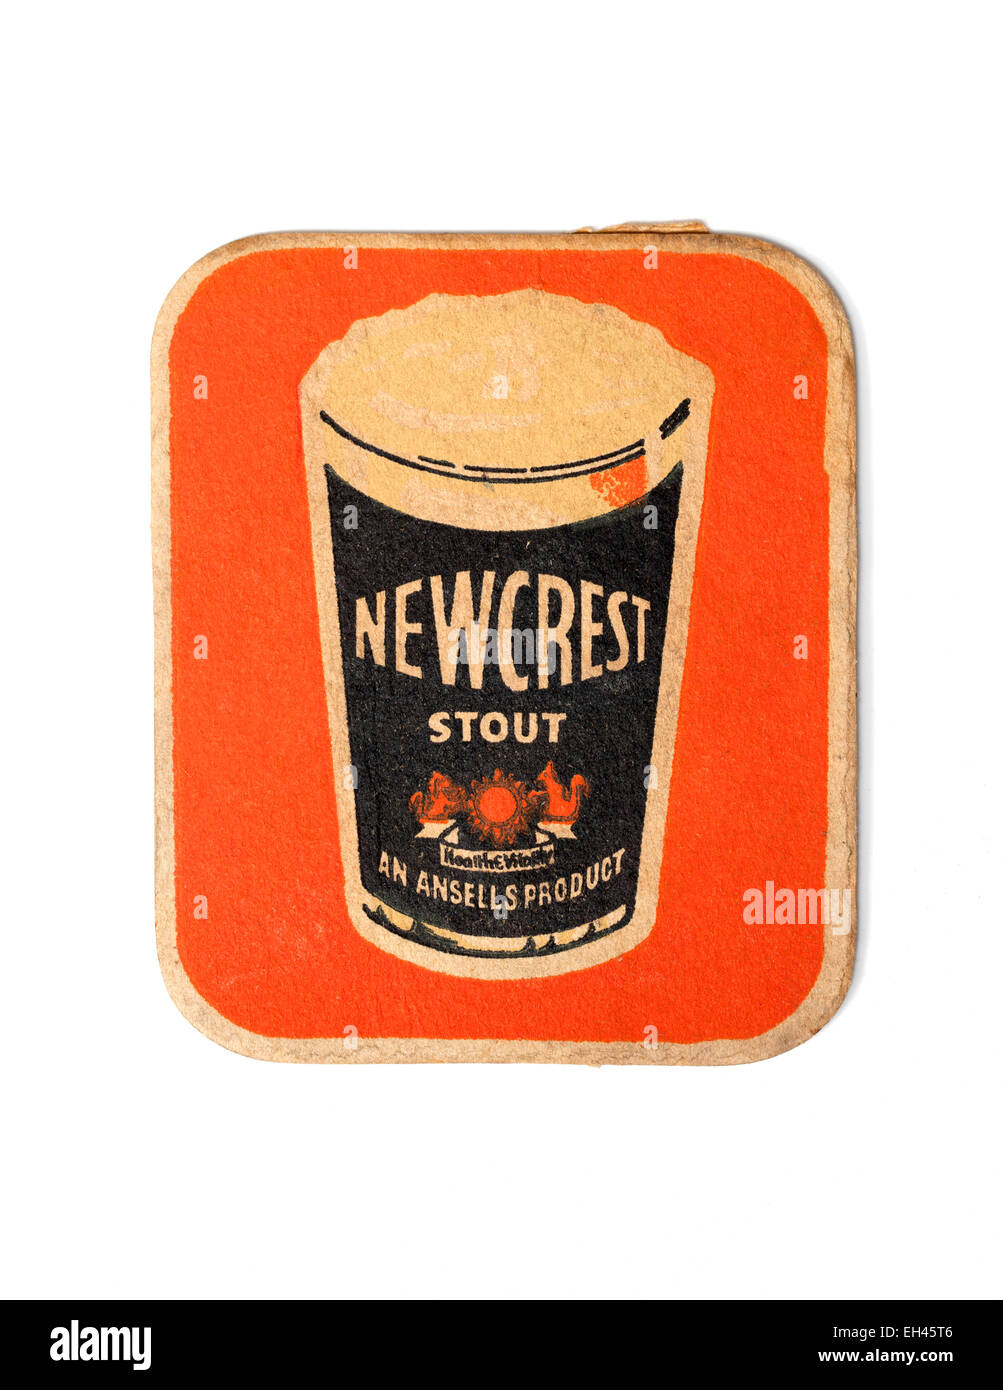 Vintage British Beermat Advertising Newcrest Stout Beer by Ansells - Stock Image